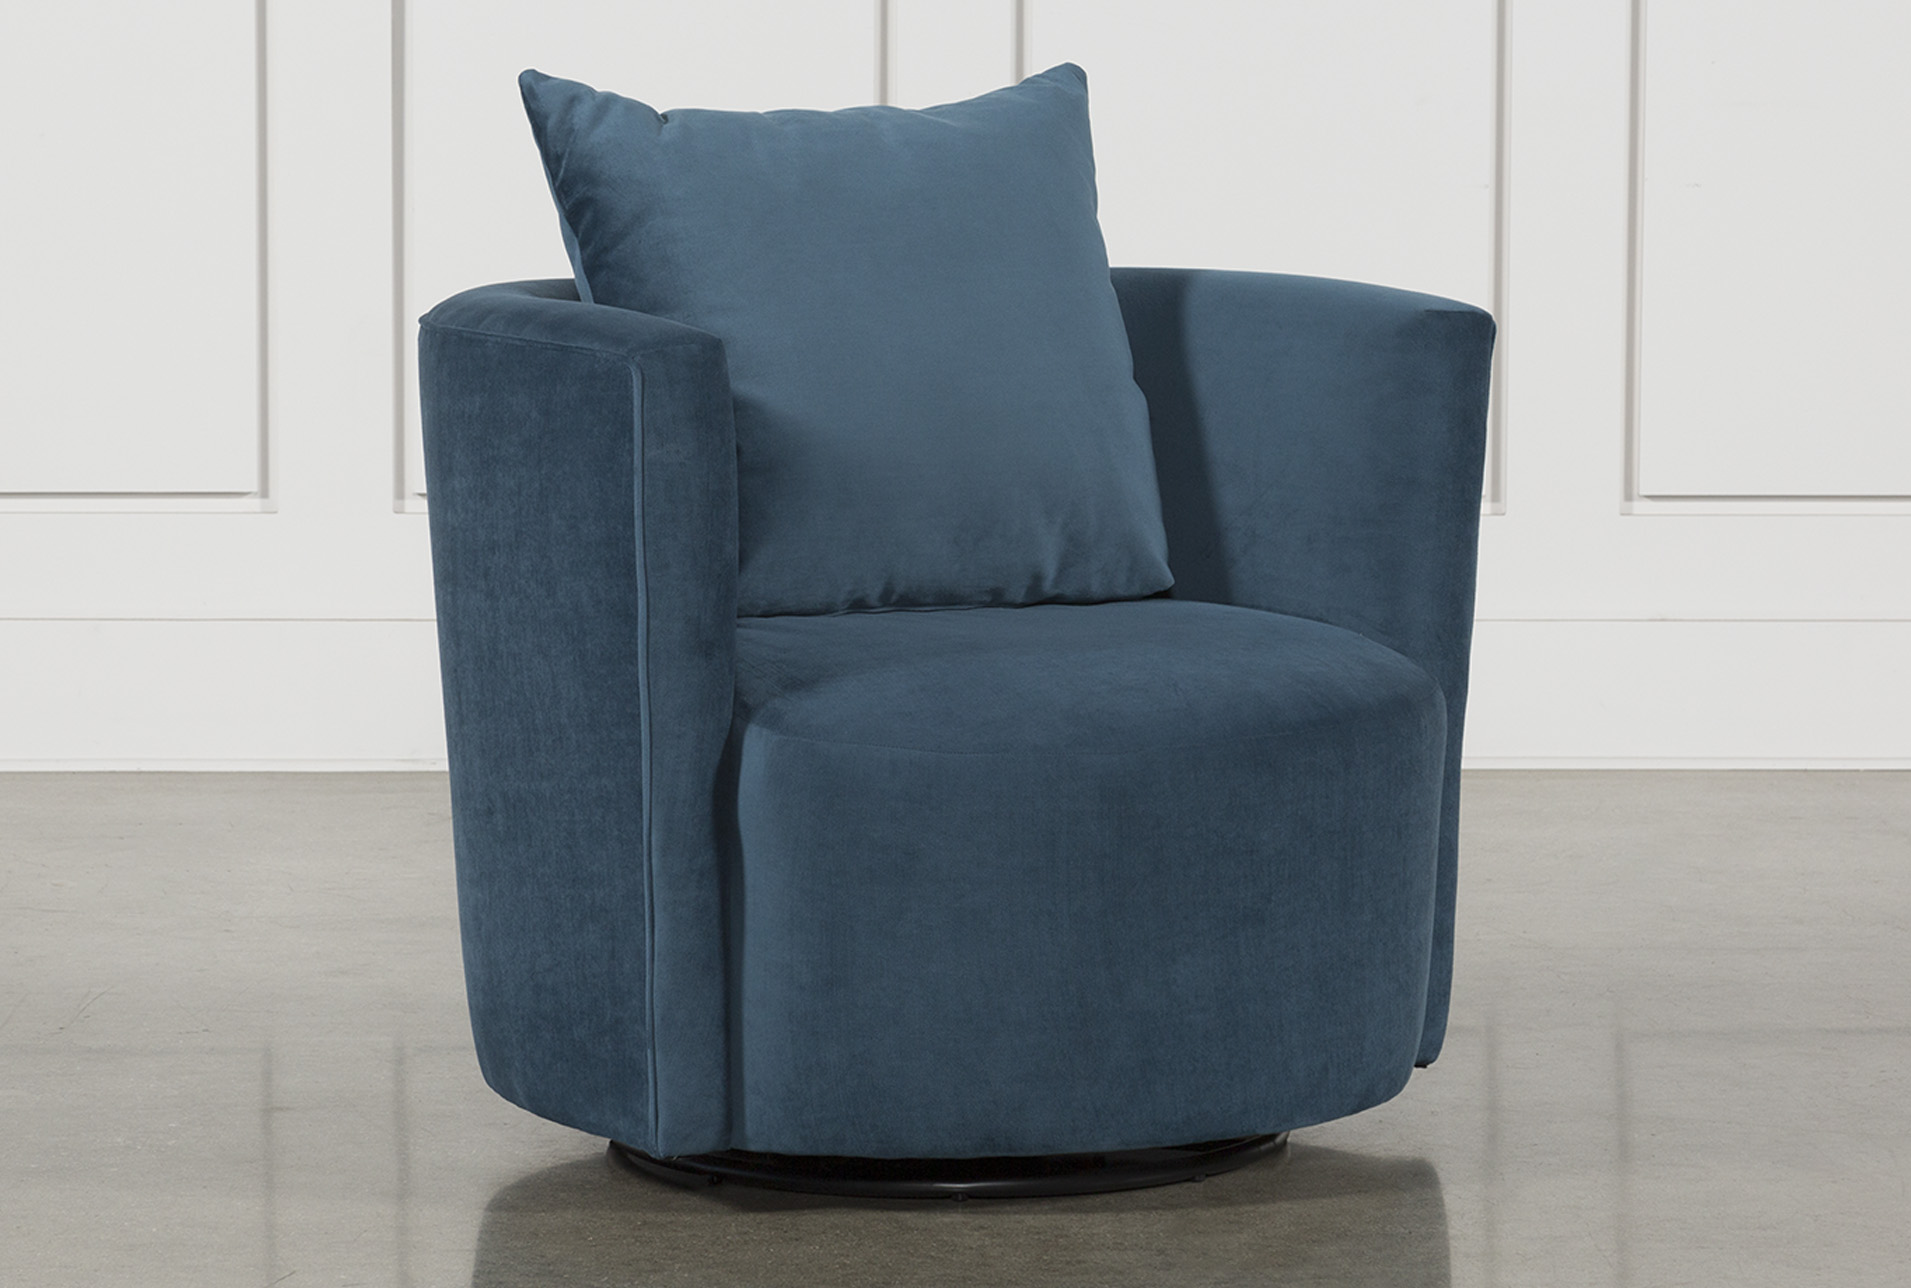 Twirl Swivel Accent Chair Blue 450 Accent Chairs Blue